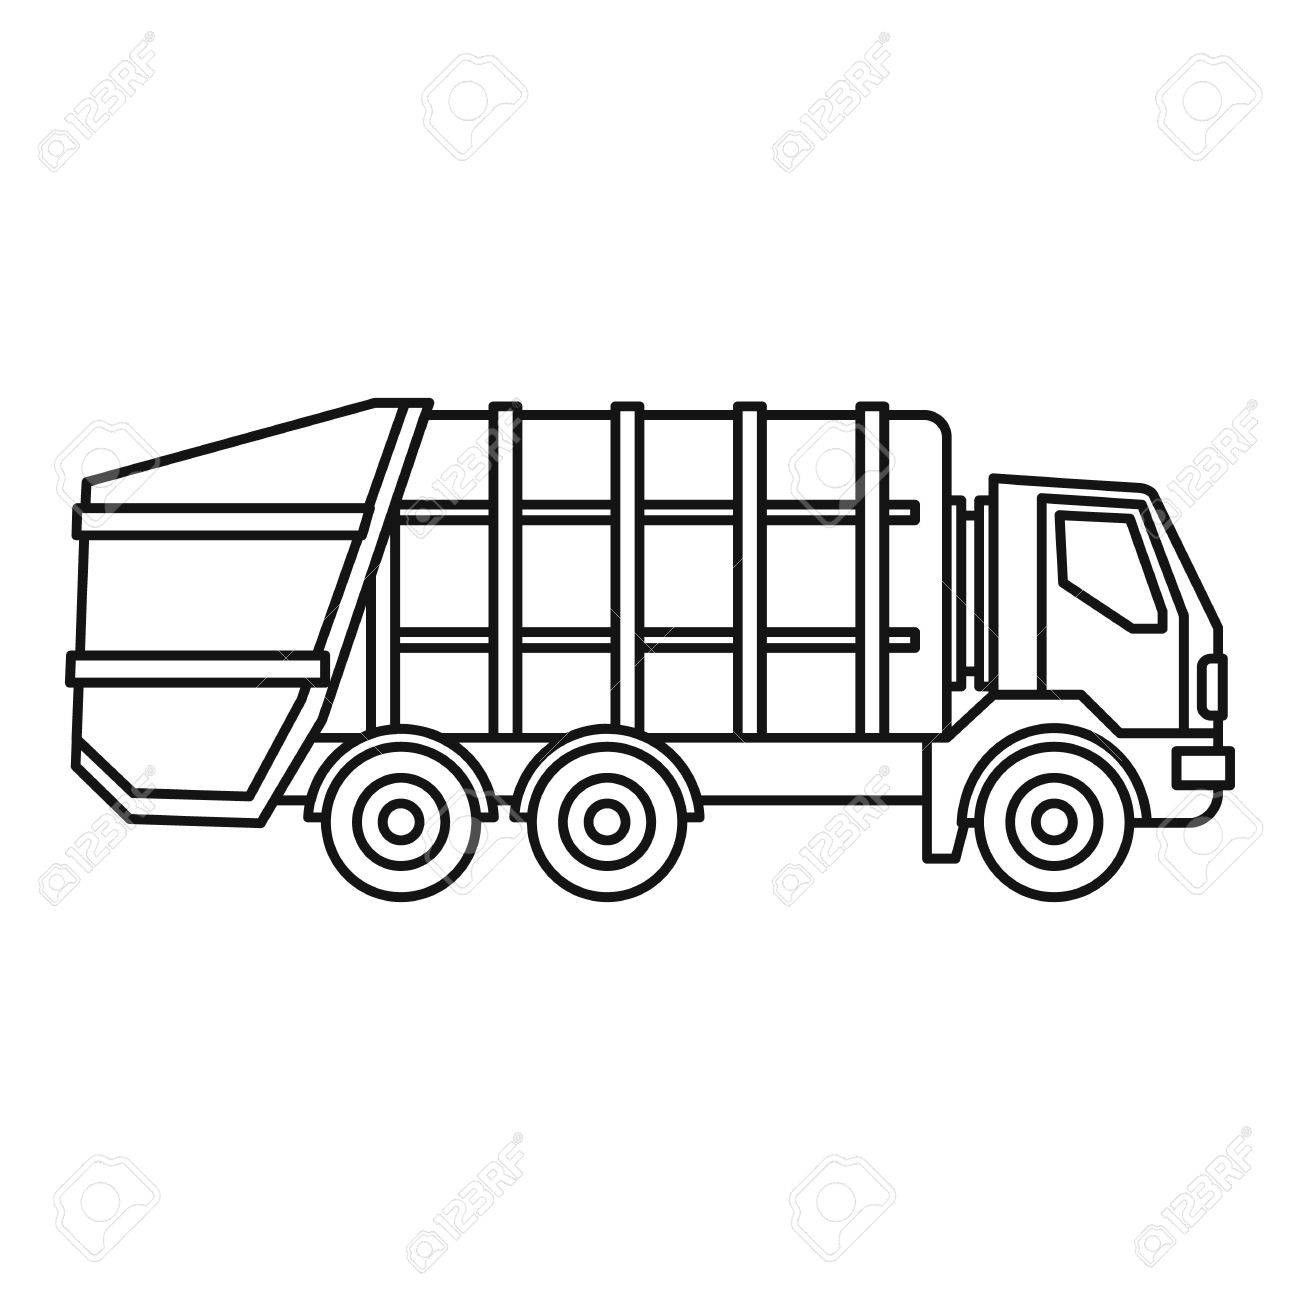 Truck Outline Vector